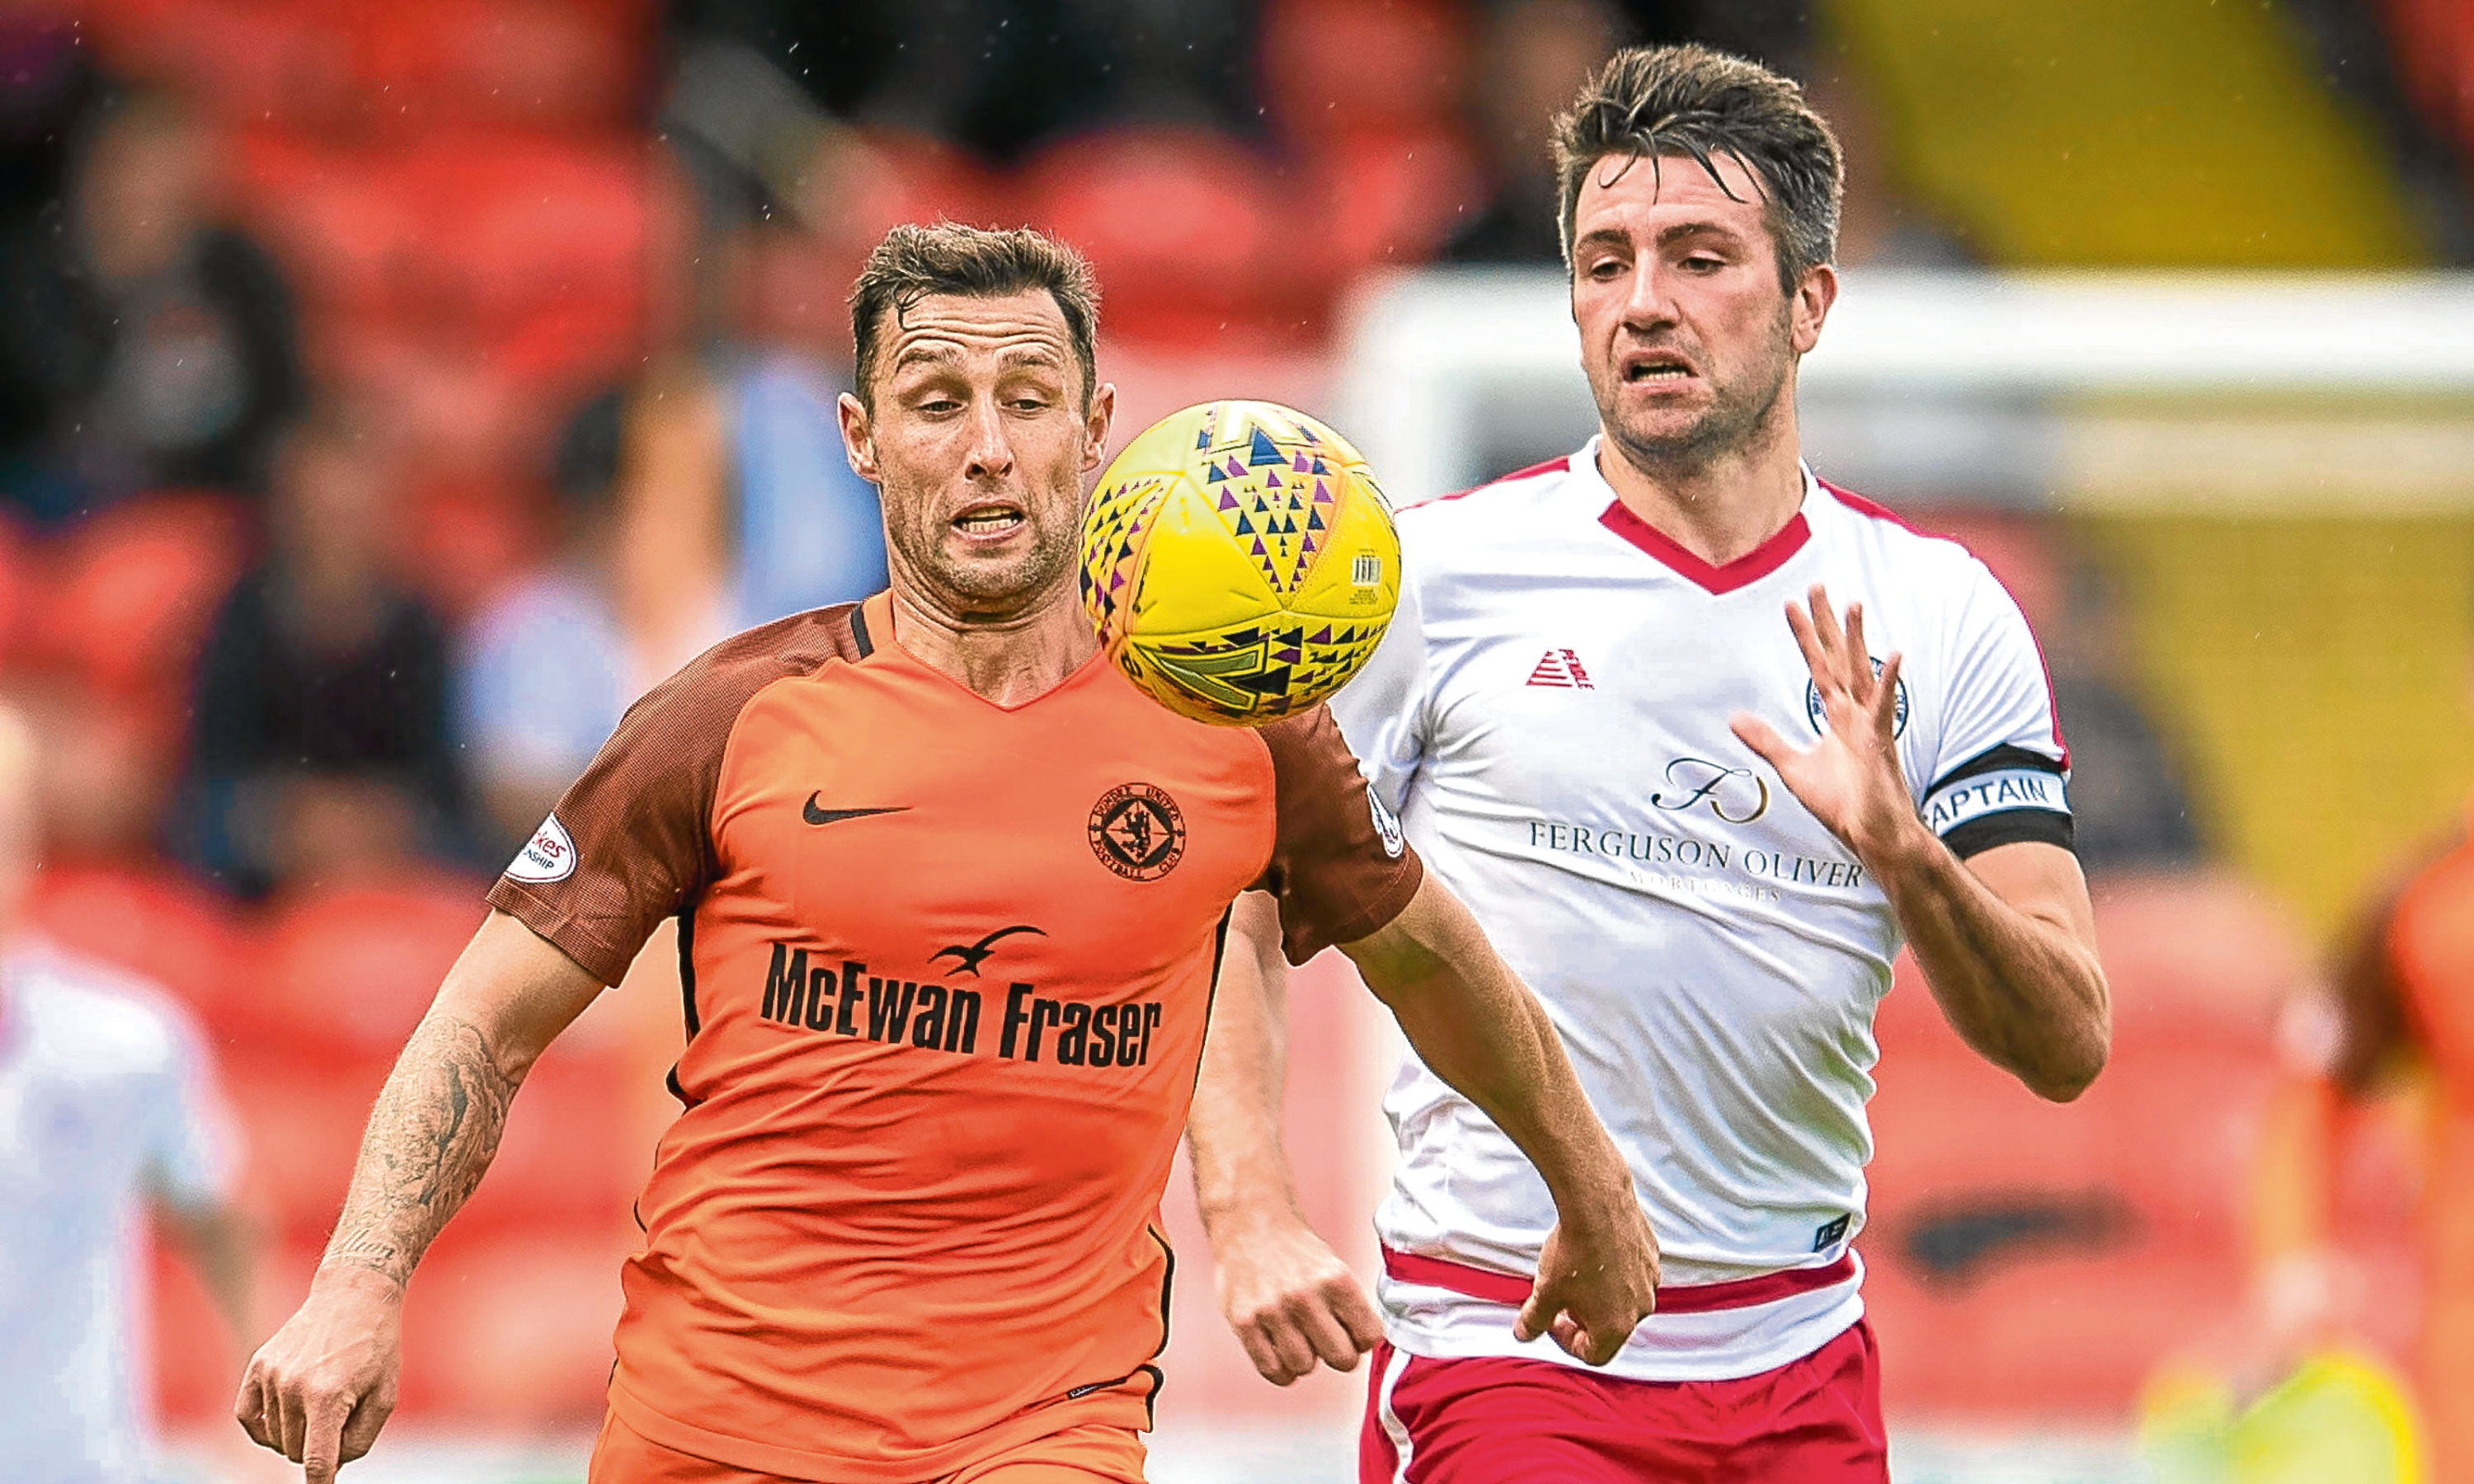 Dundee United's Scott MacDonald (left) takes on Brechin's Paul McLean